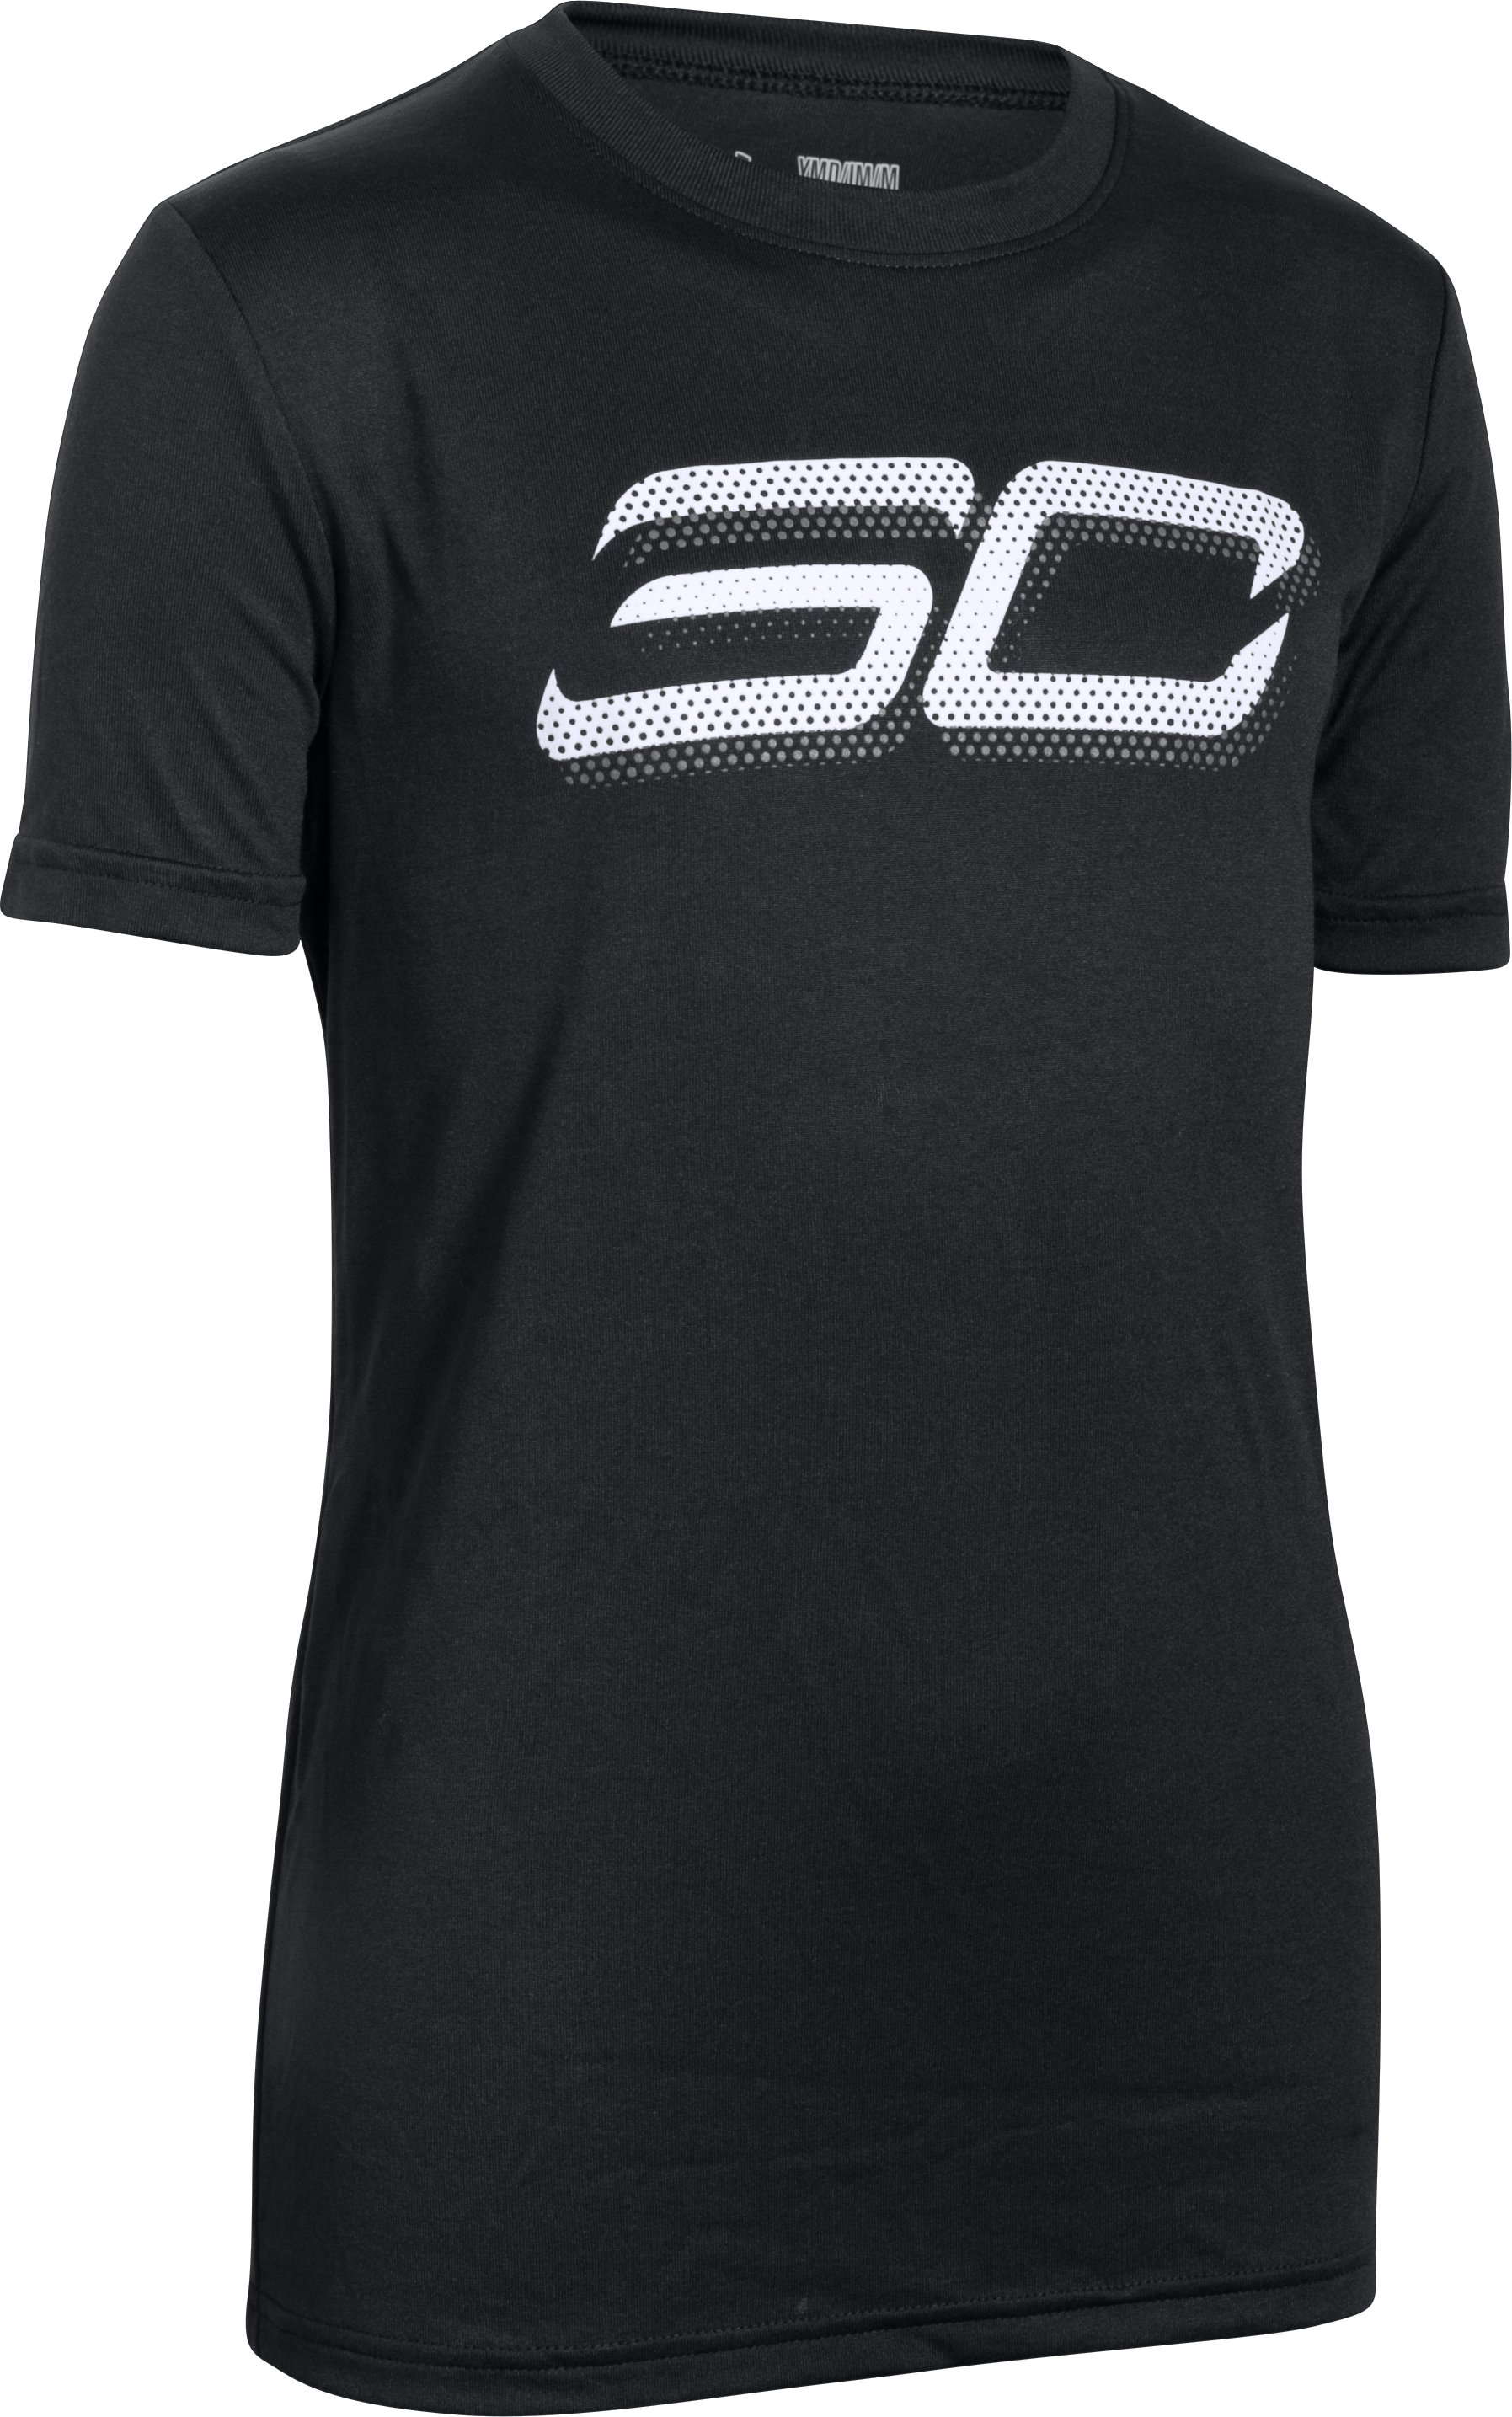 Boys' SC30 Branded T-Shirt, Black